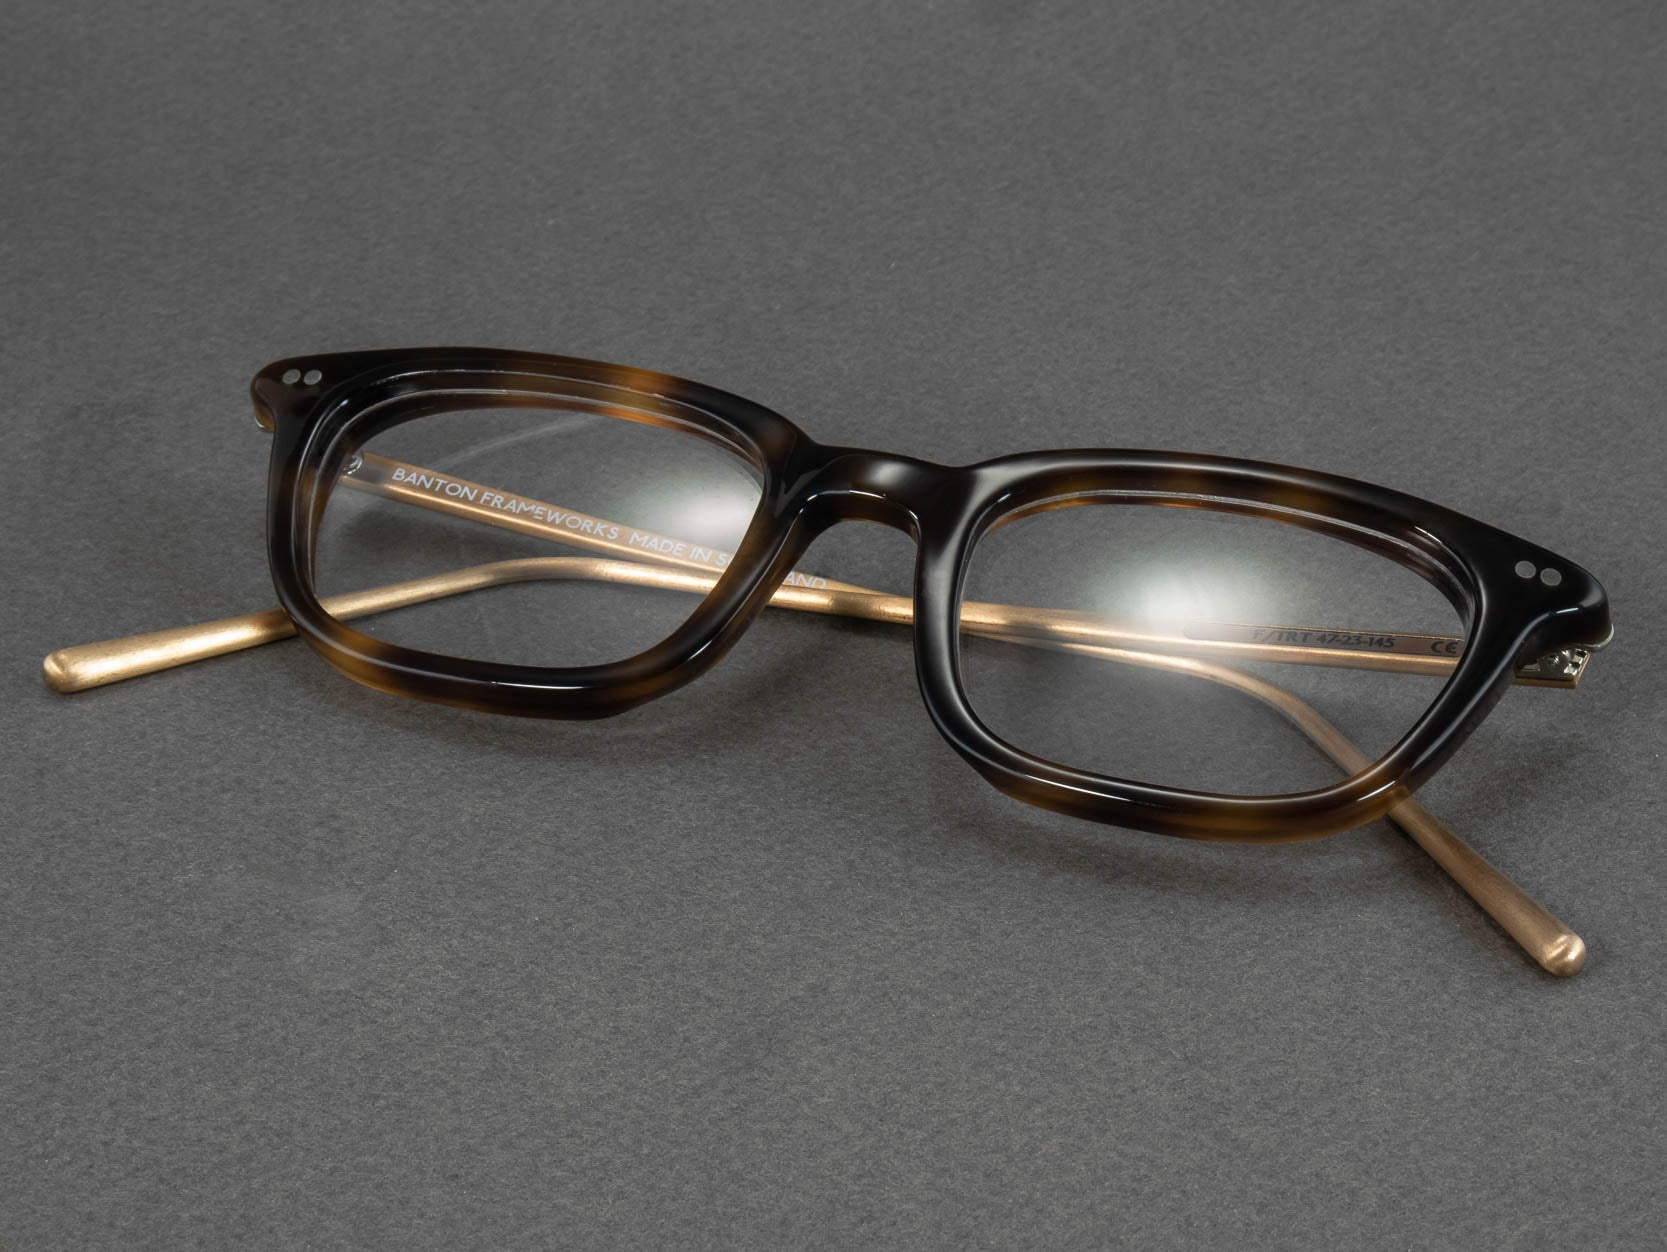 rectangular tortoise shell glasses frame folded